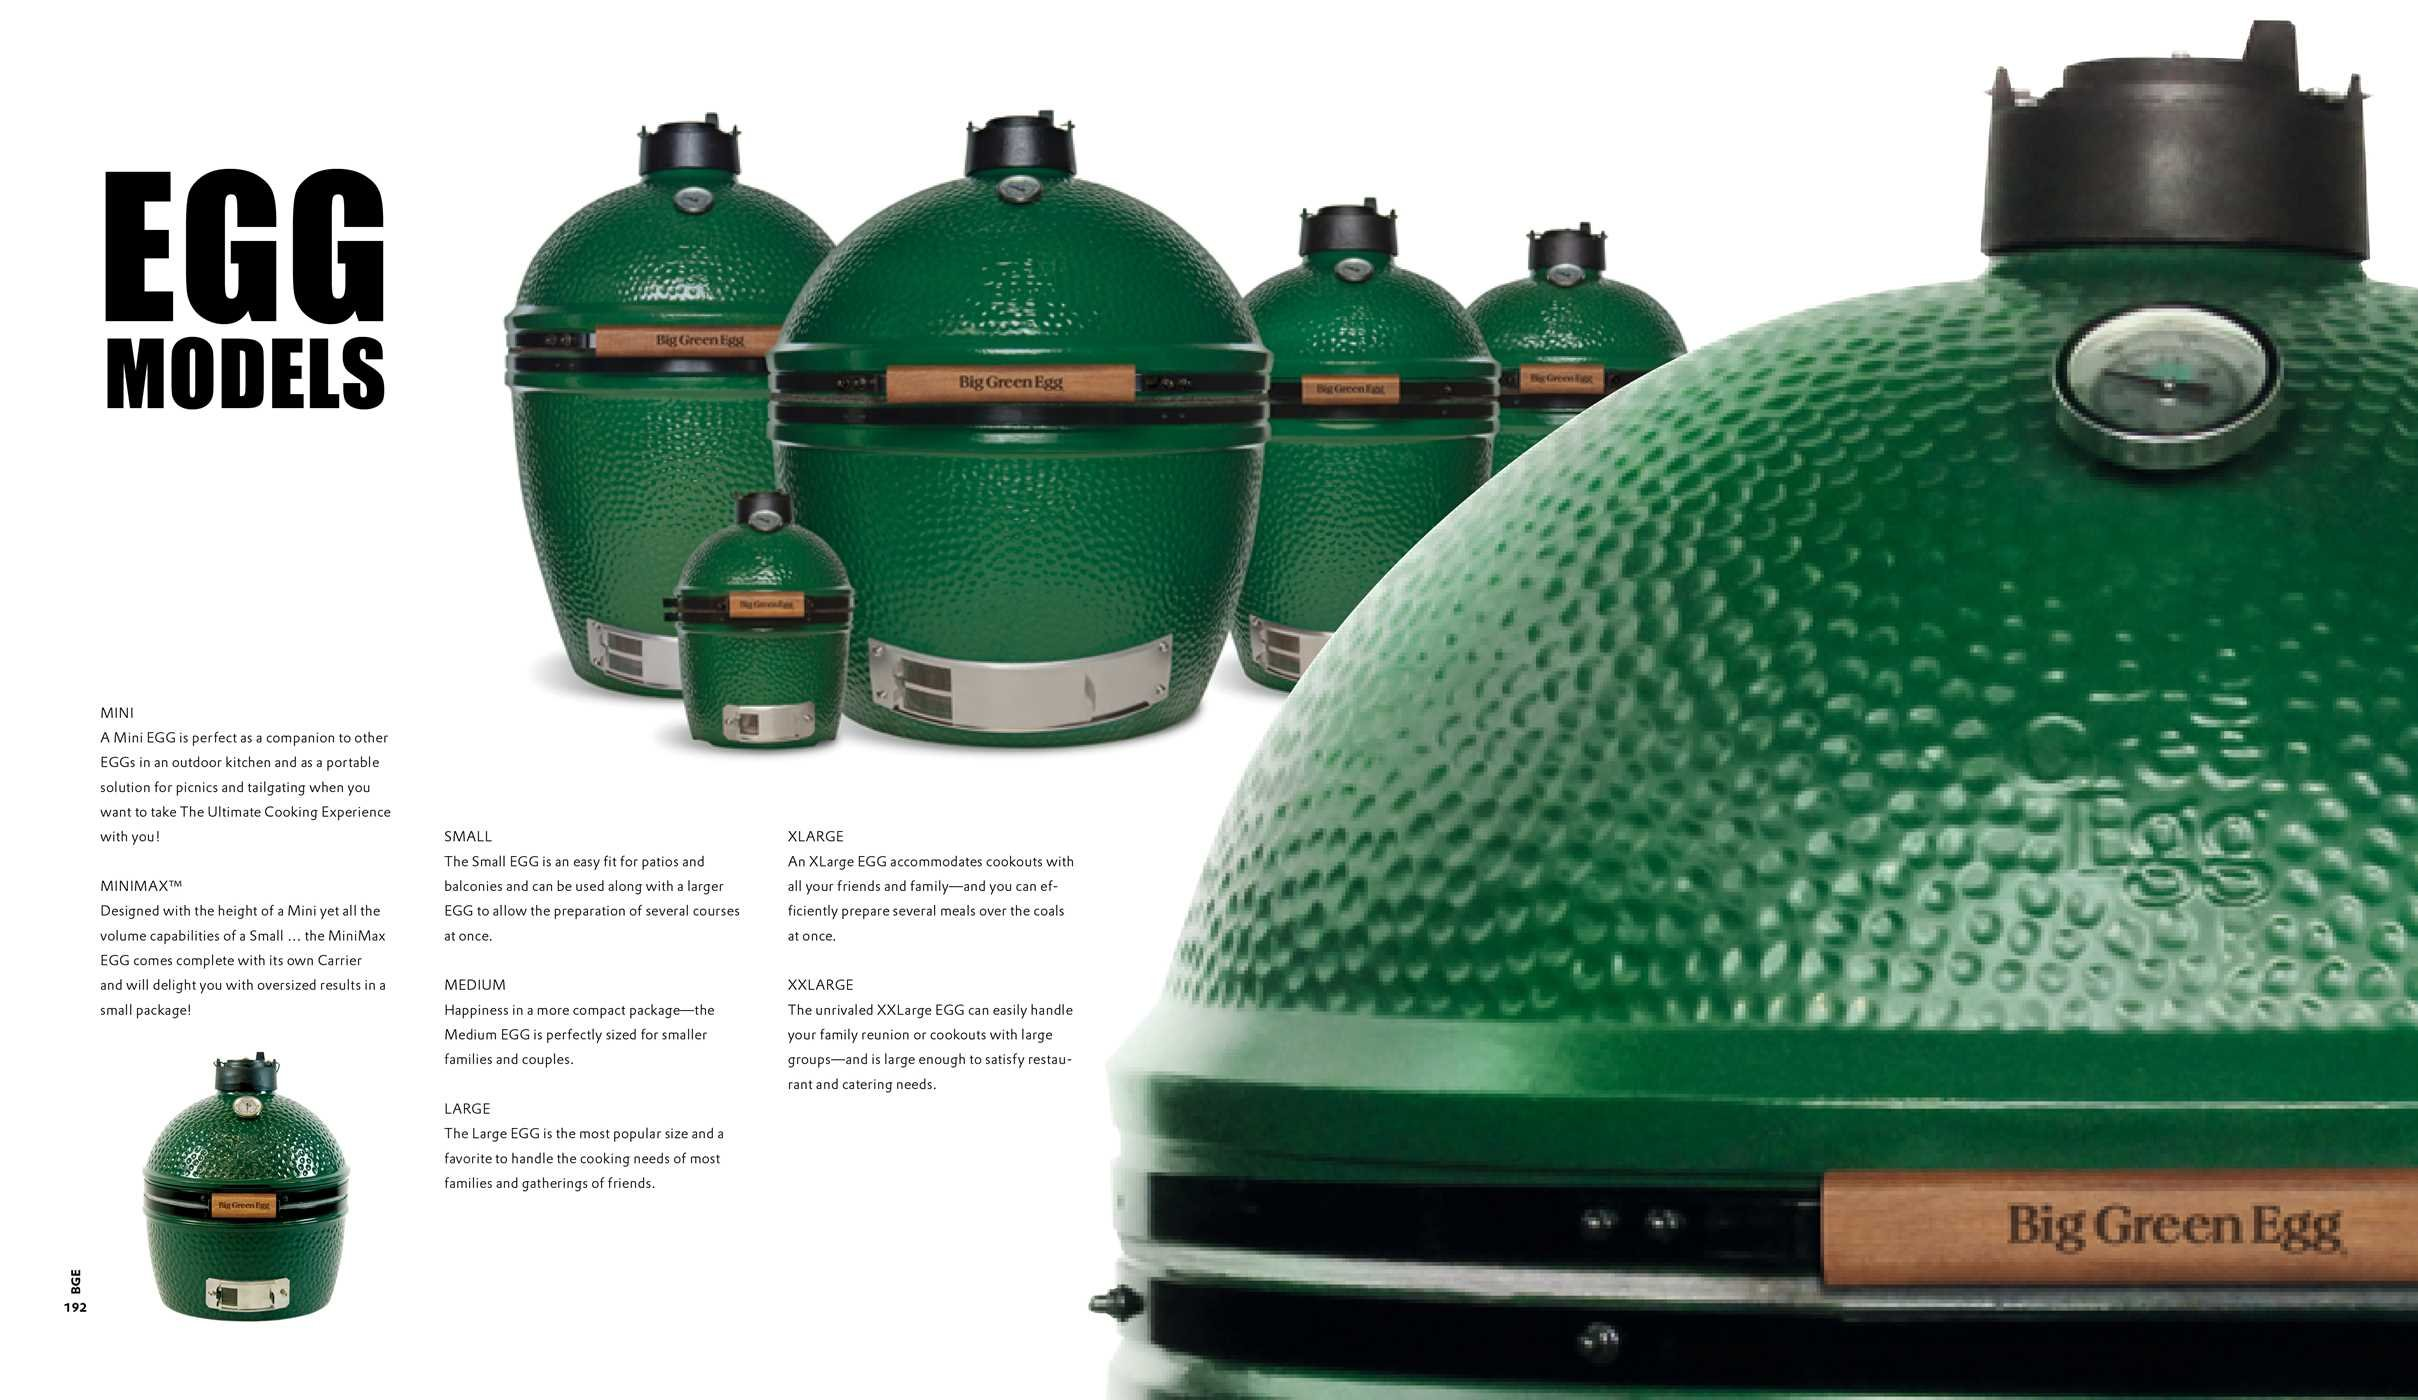 The Big Green Egg Book: Cooking on the Big Green Egg (Volume 2) by Andrews McMeel Publishing